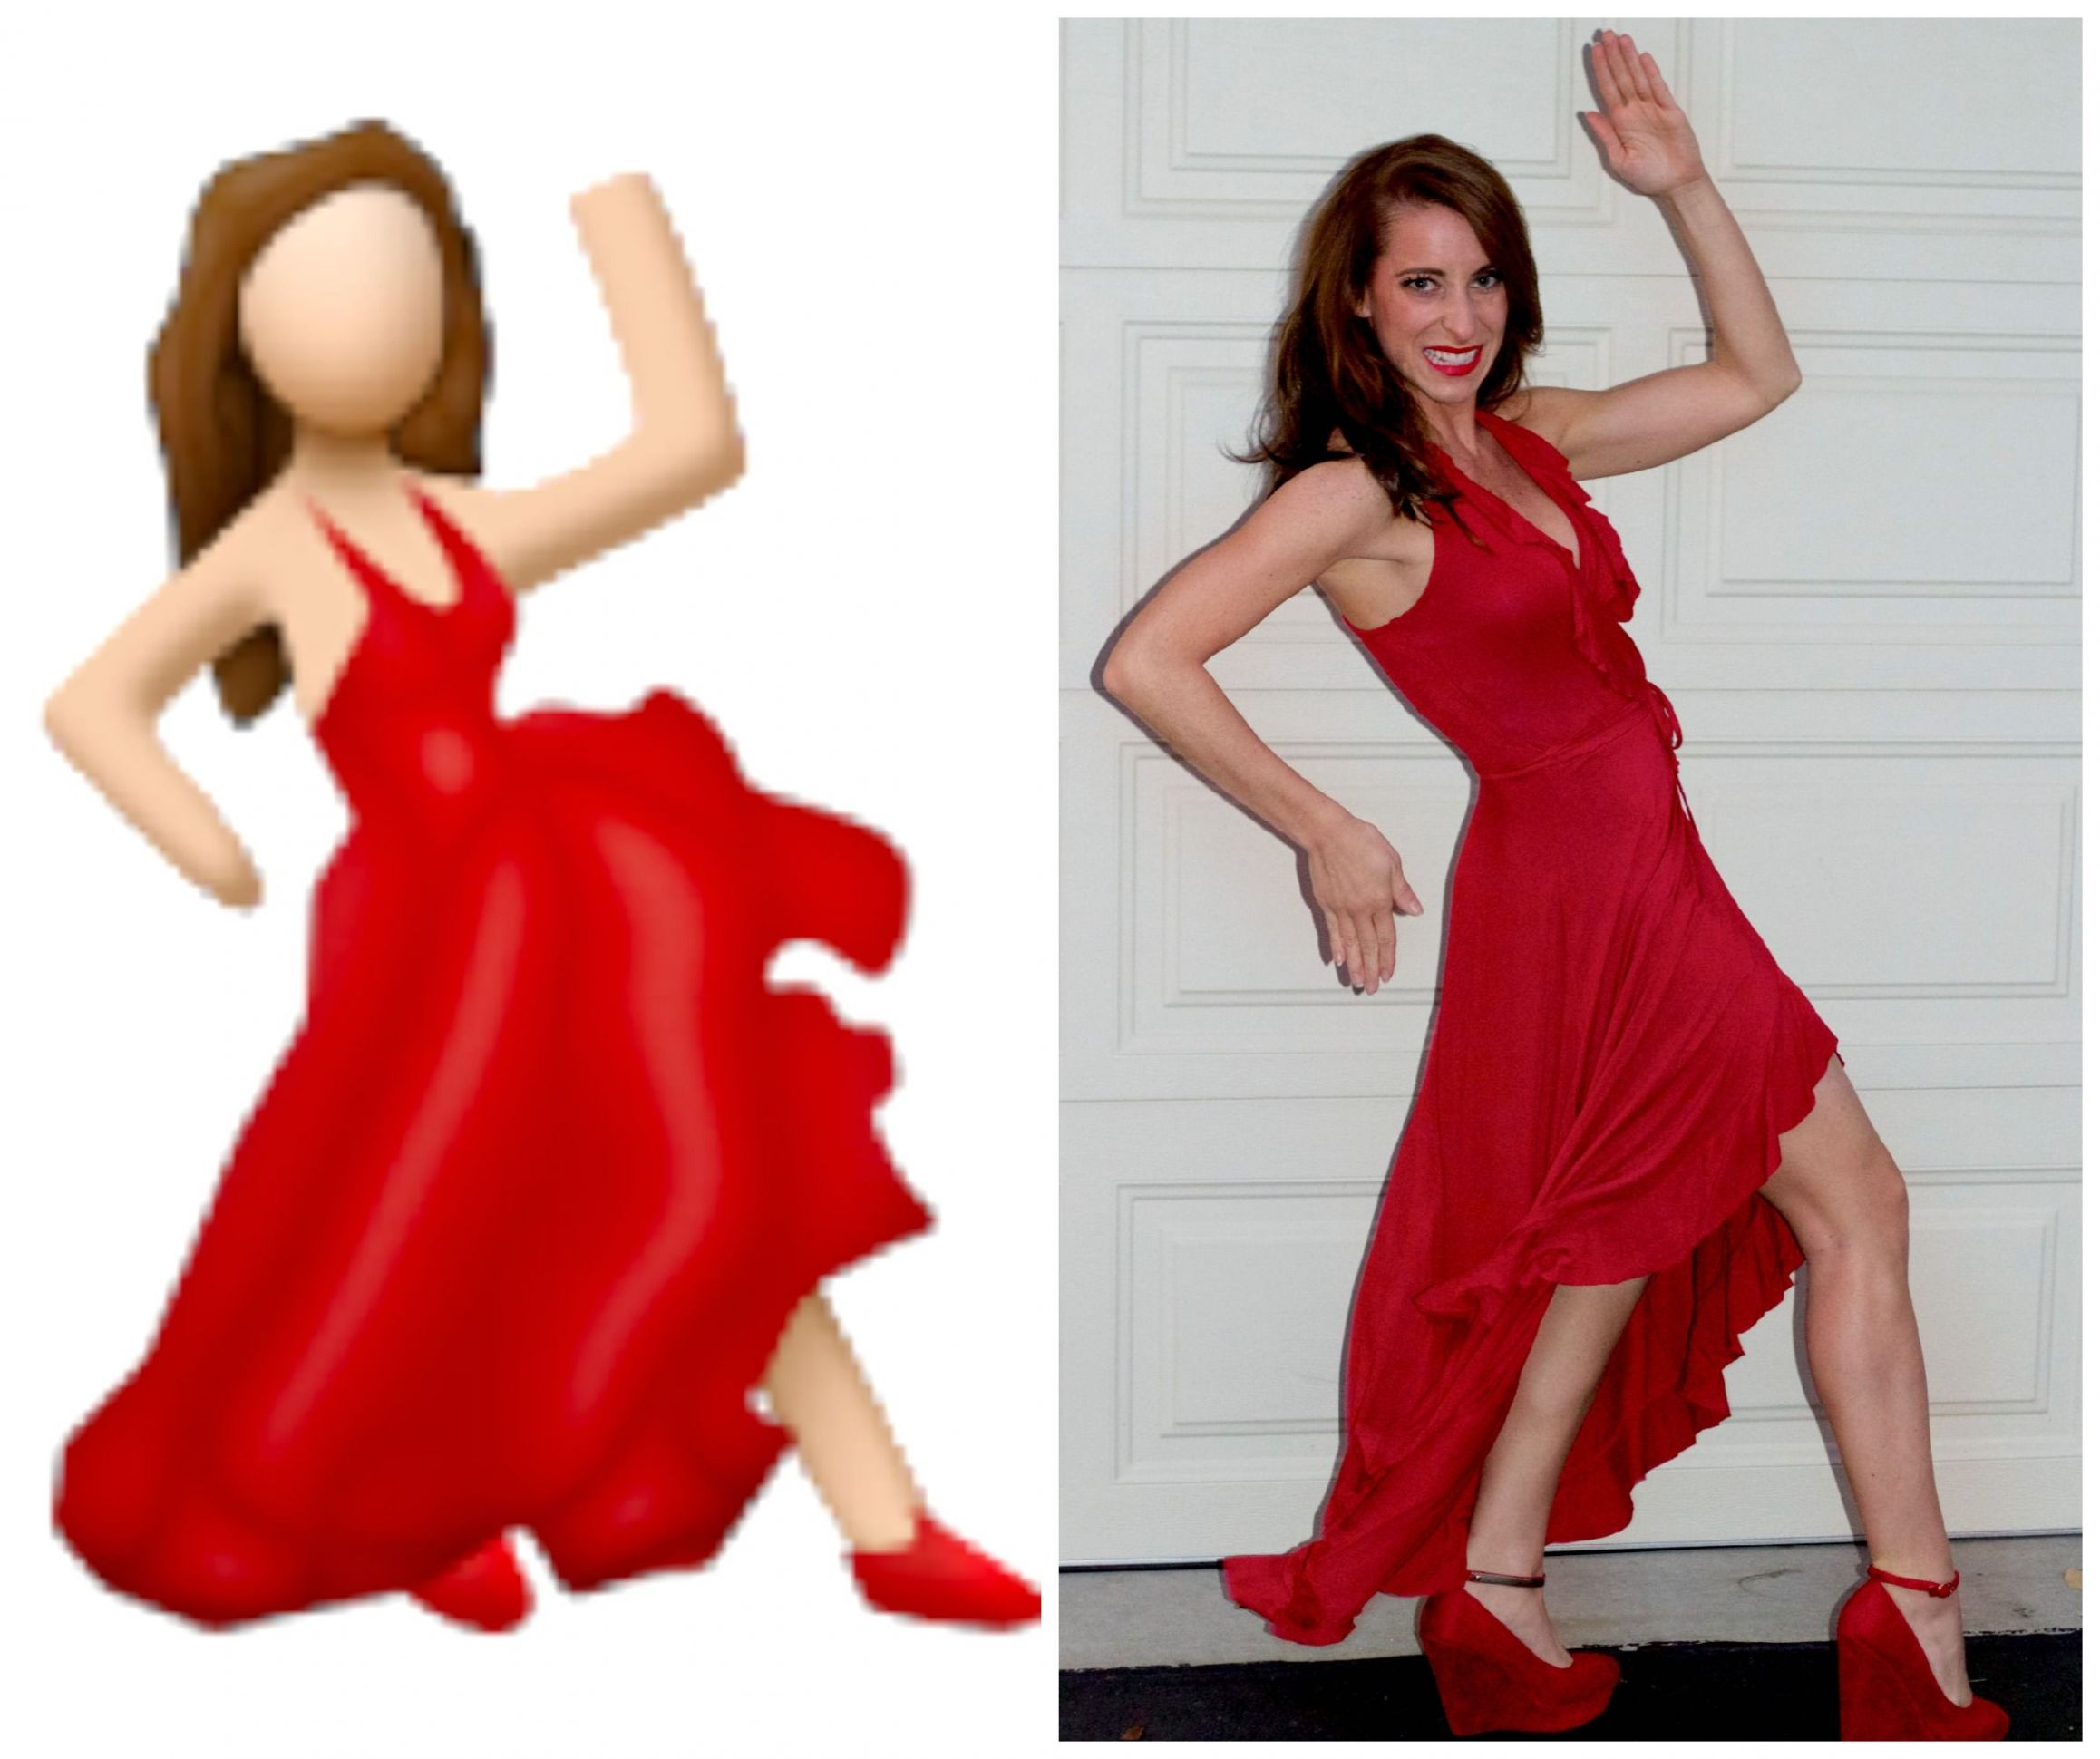 HOLLA-ween! (With images) | Red dress costume, Fancy dress ..